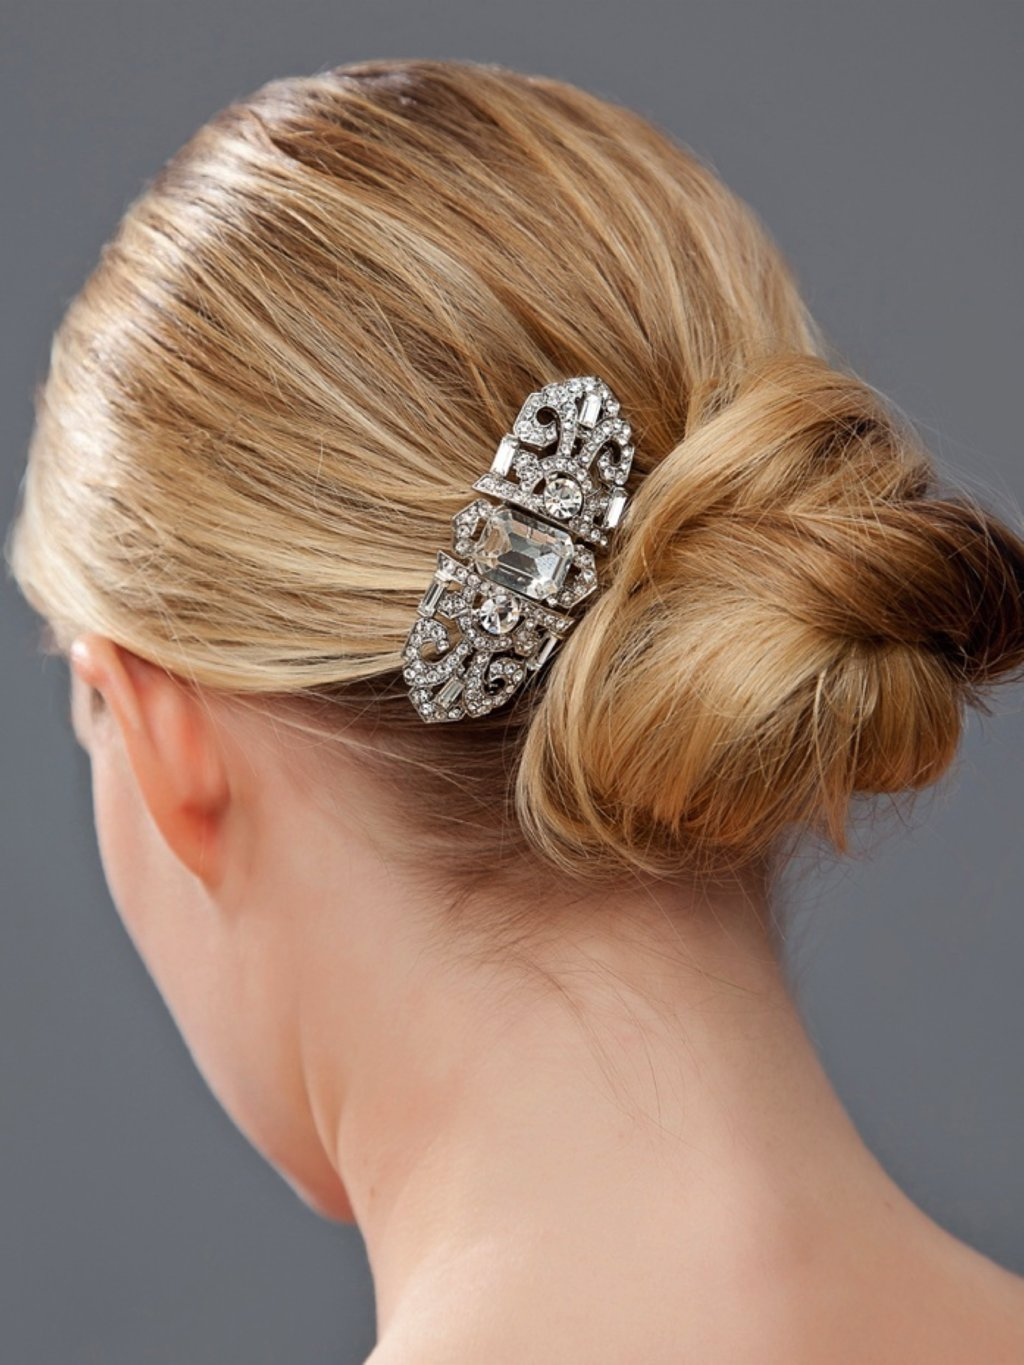 classic bridal chignon wedding hairstyle with vintage-inspired